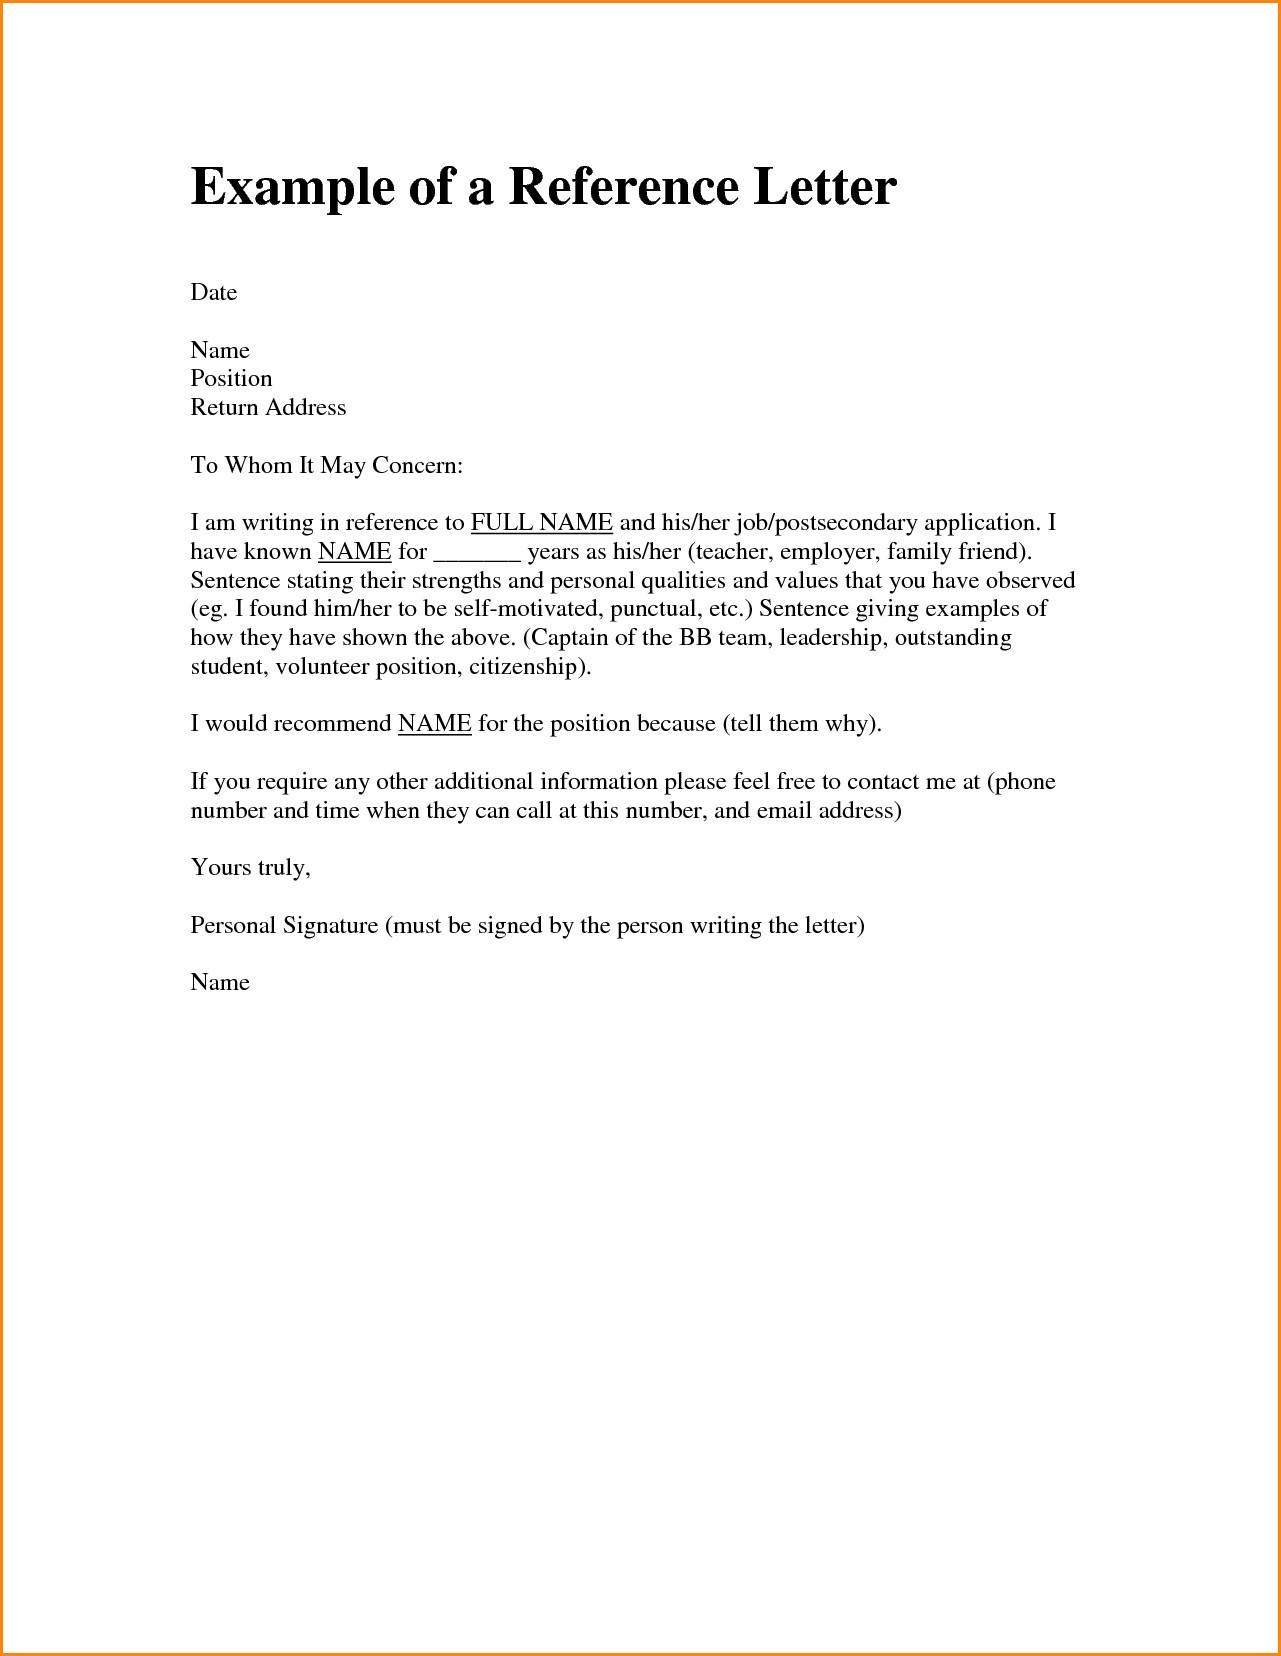 Immigration Reference Letter Template - Letter Re Mendation Template to whom It May Concern New Letter